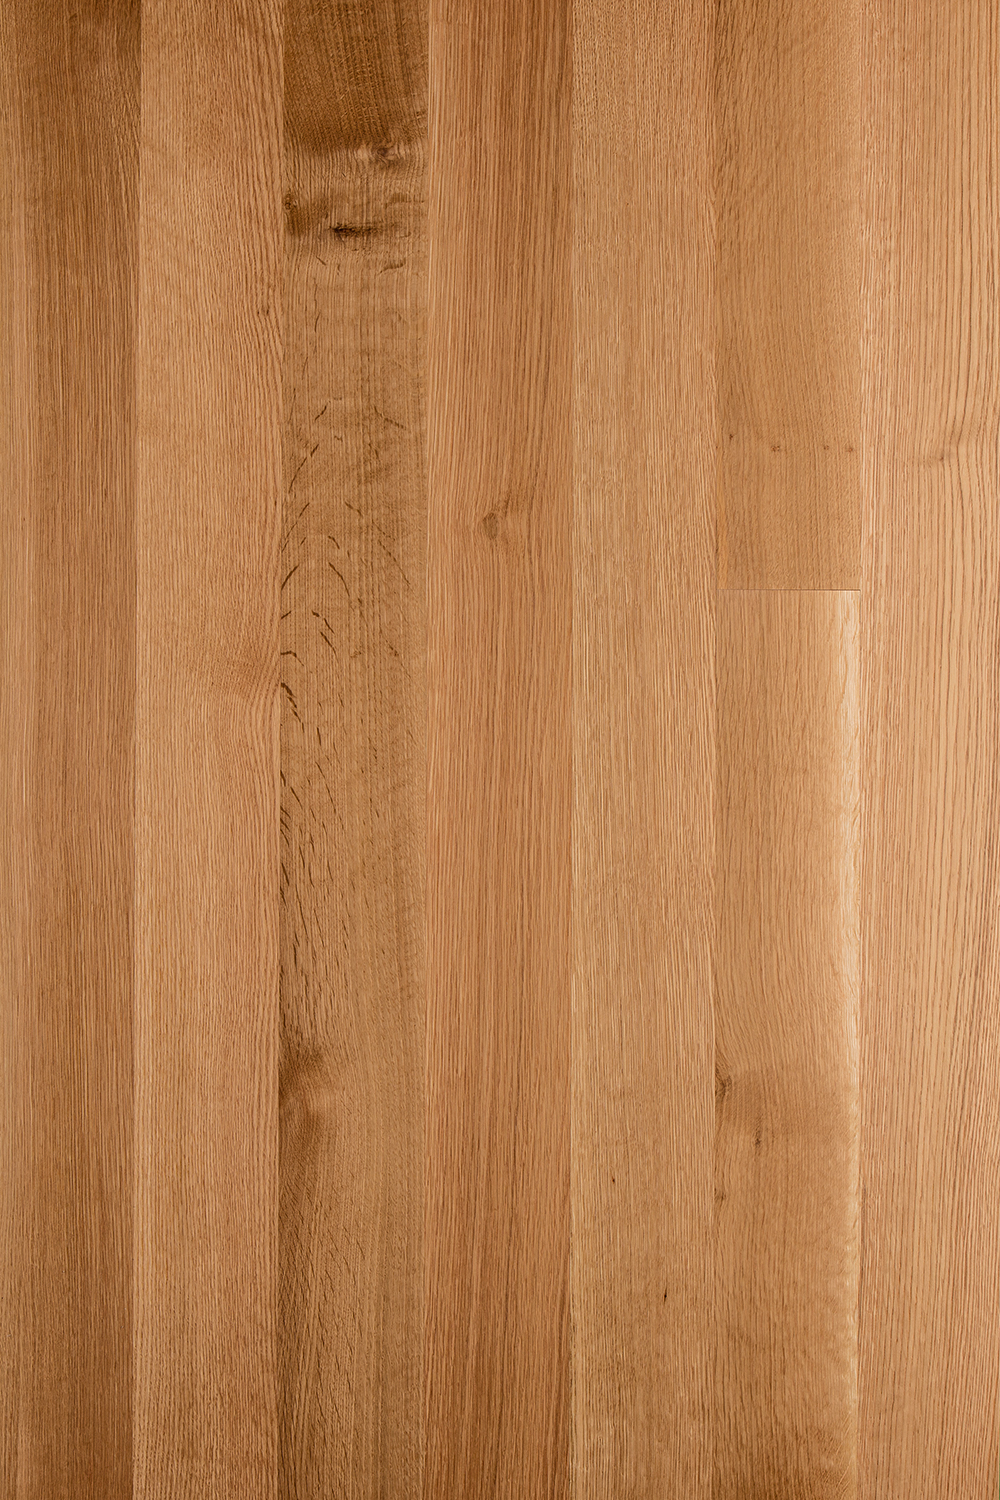 Select Rift & Quartered White Oak